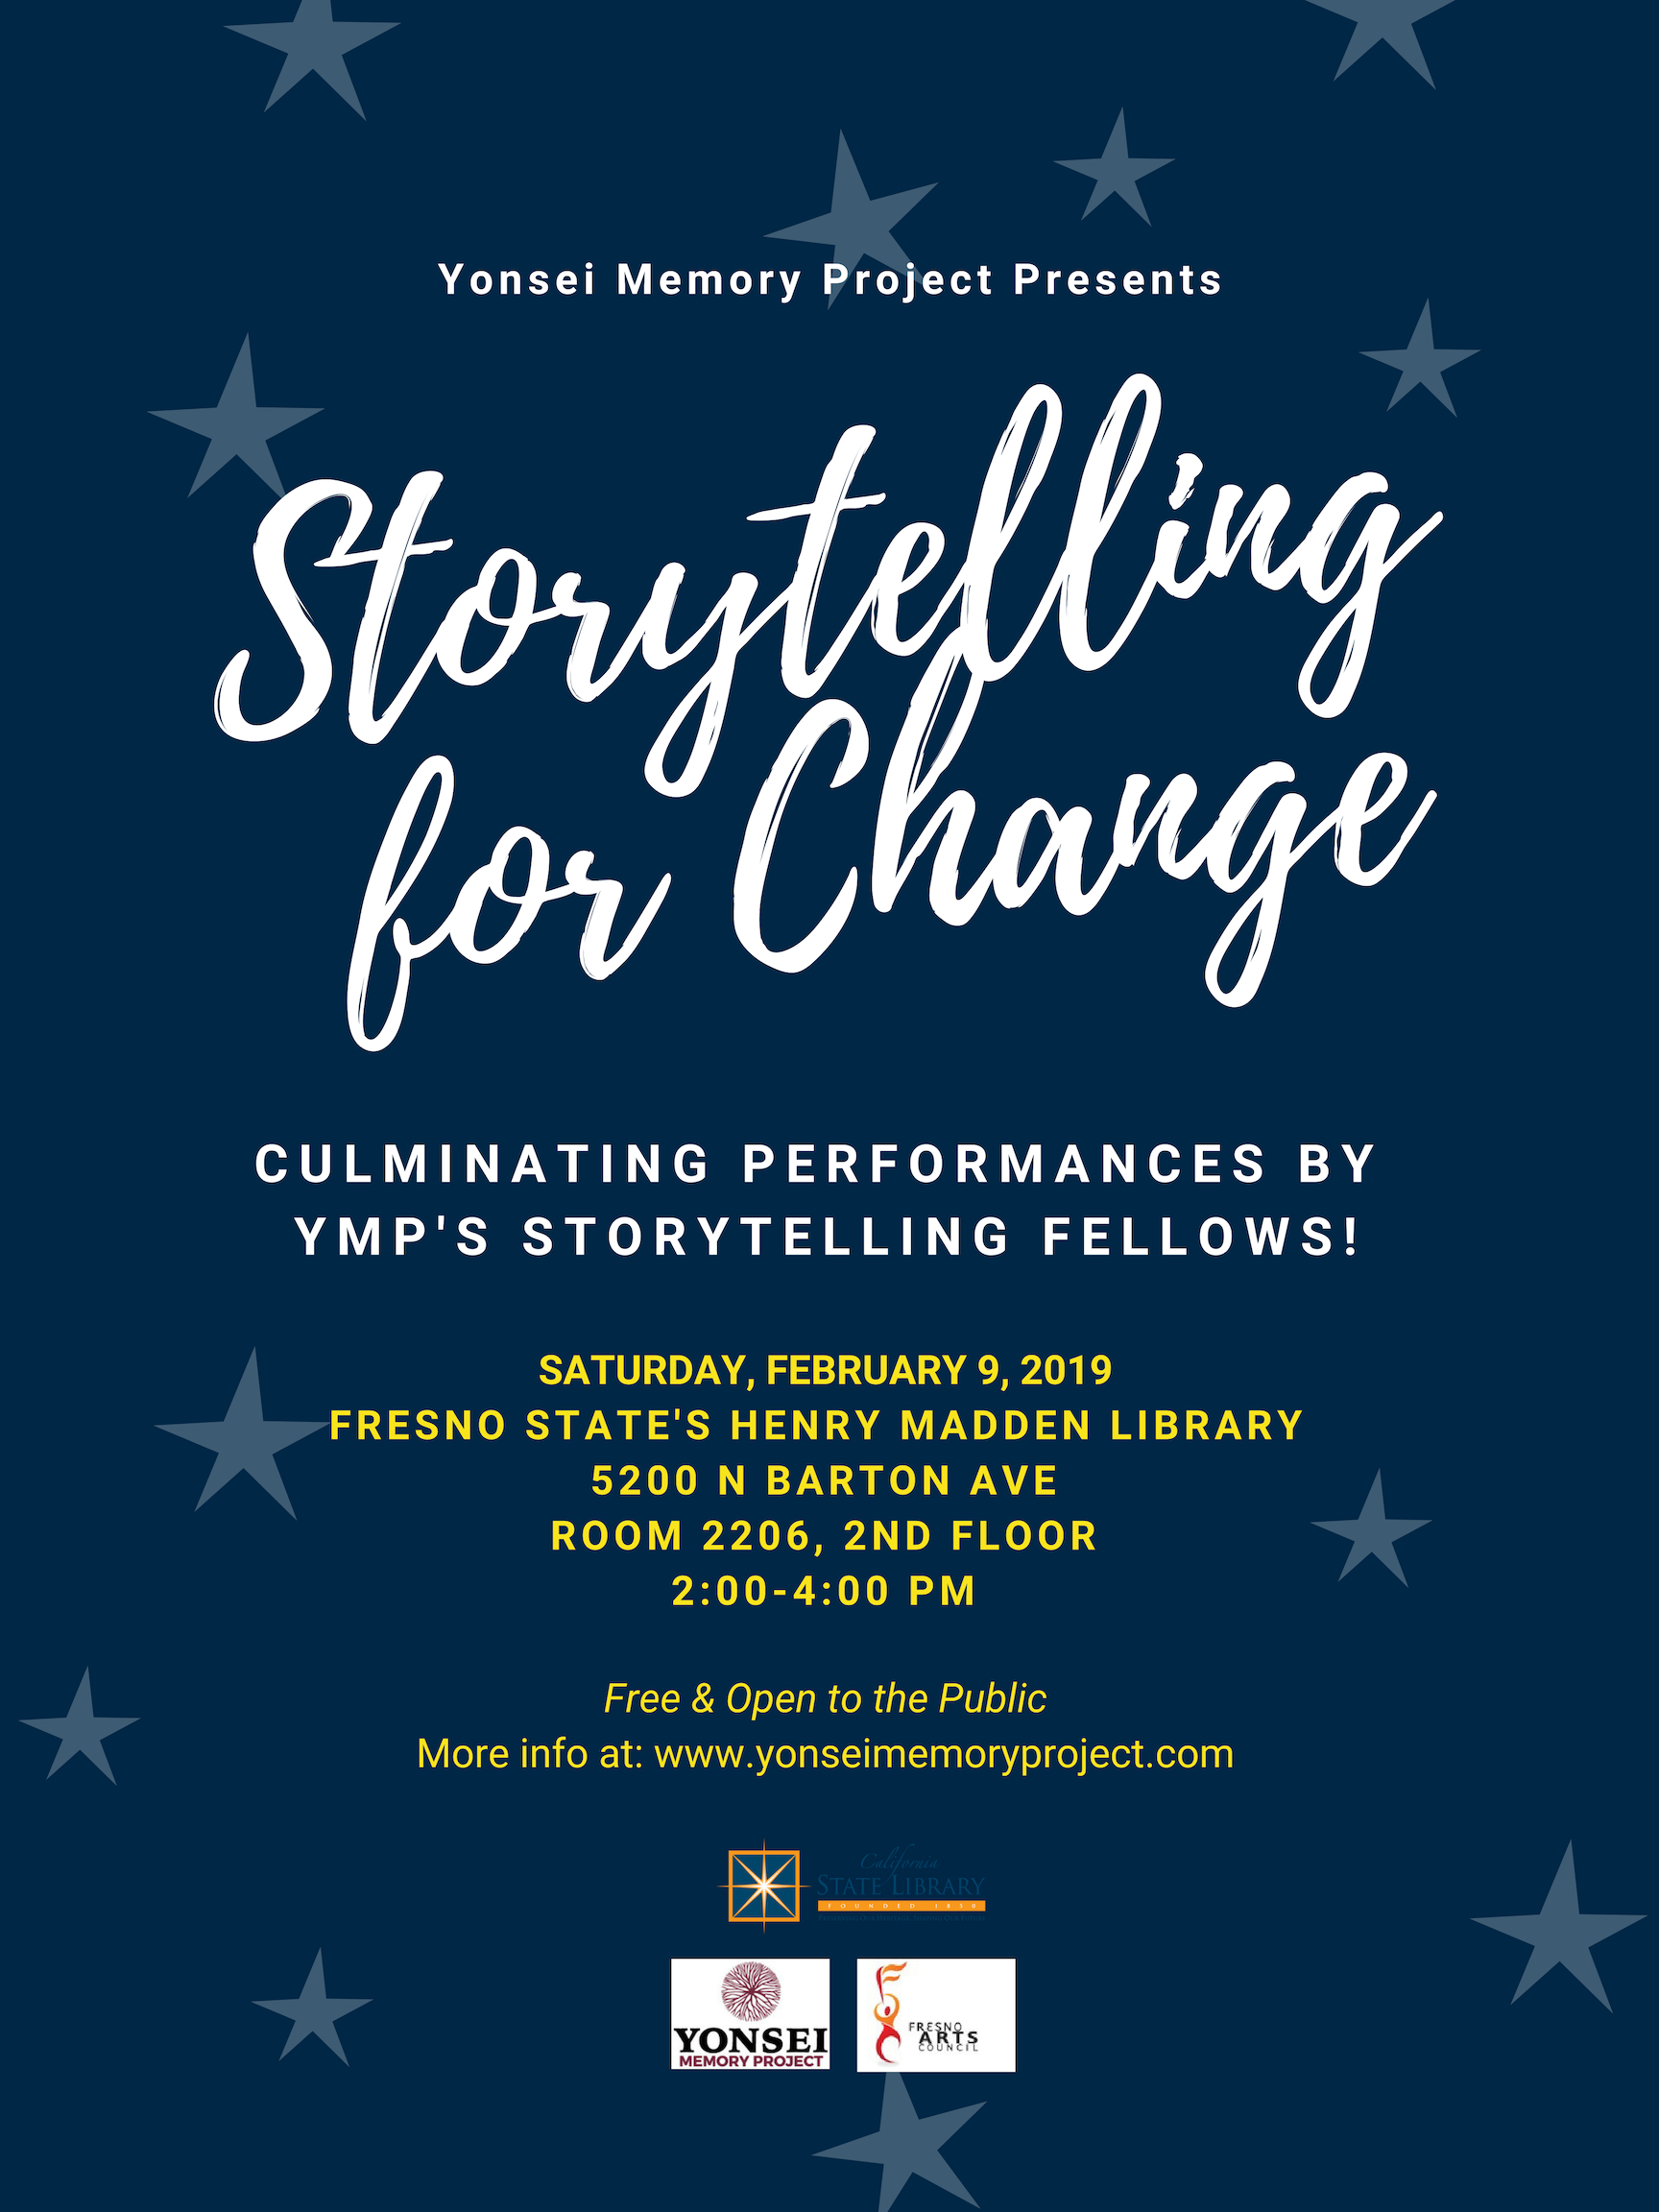 Storytelling for Change final performances - flyer image.